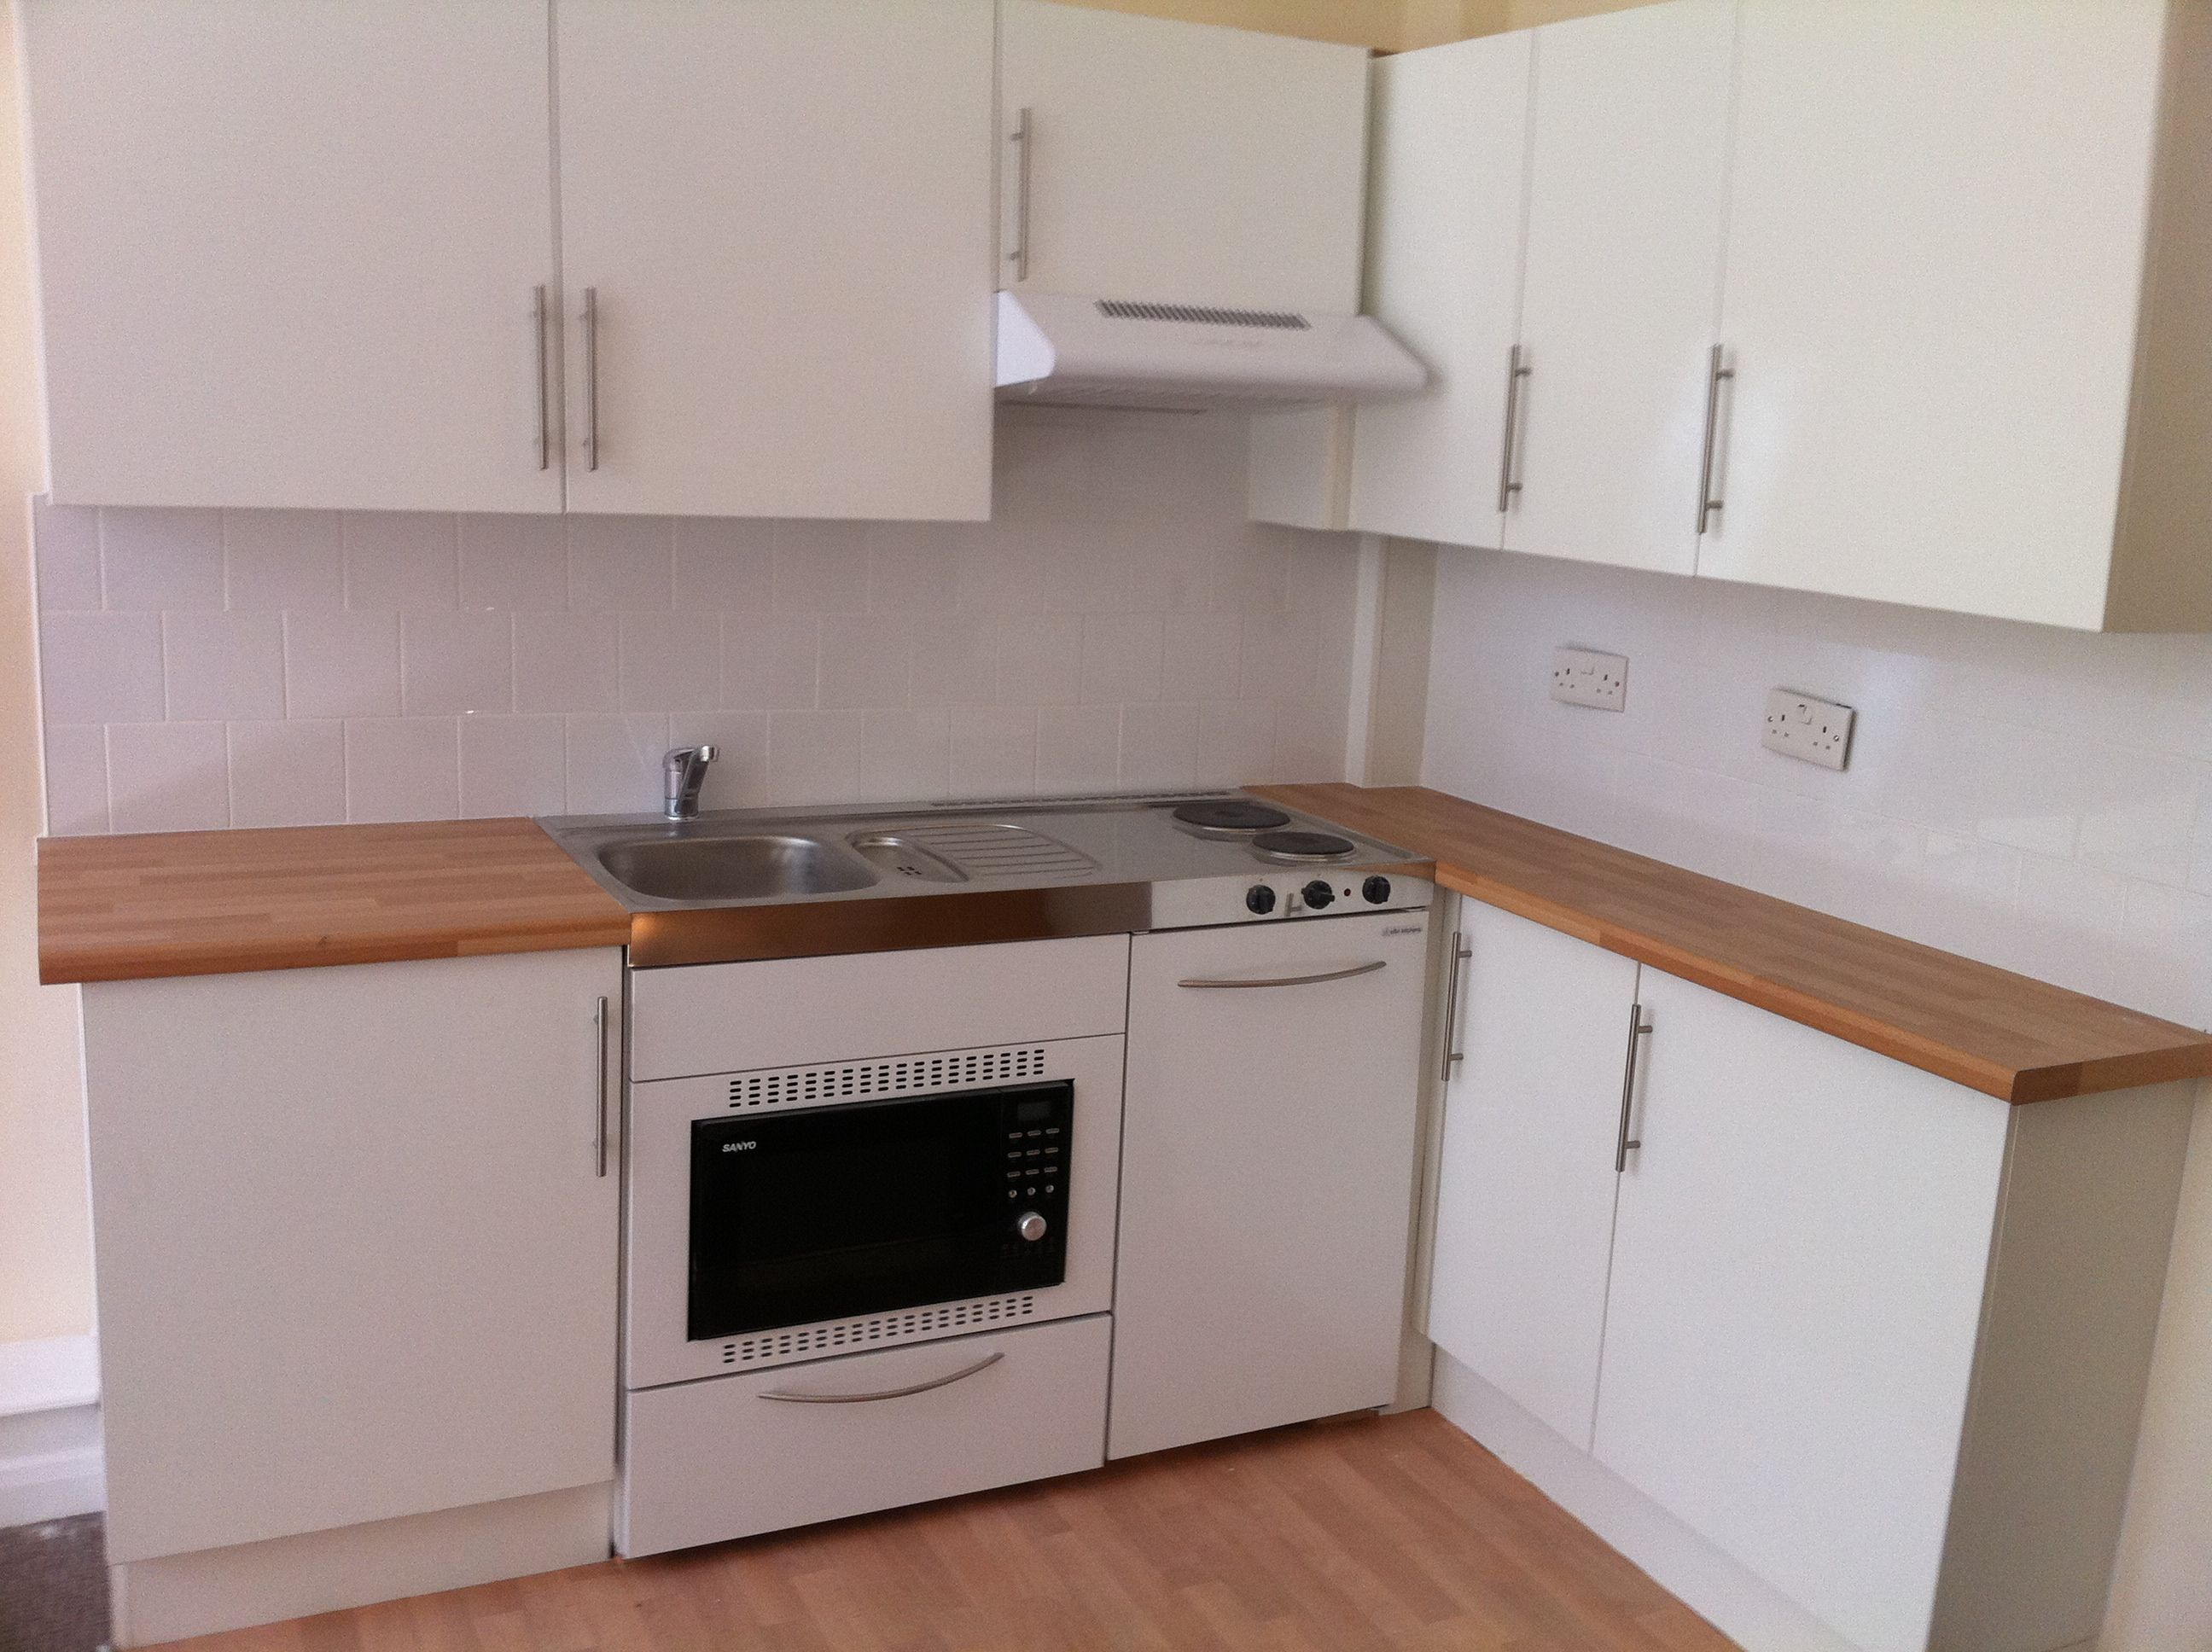 Studio Apartment Kitchen Beautiful Elfin Mini Kitchen Ready For Us In A Studio Apartment In